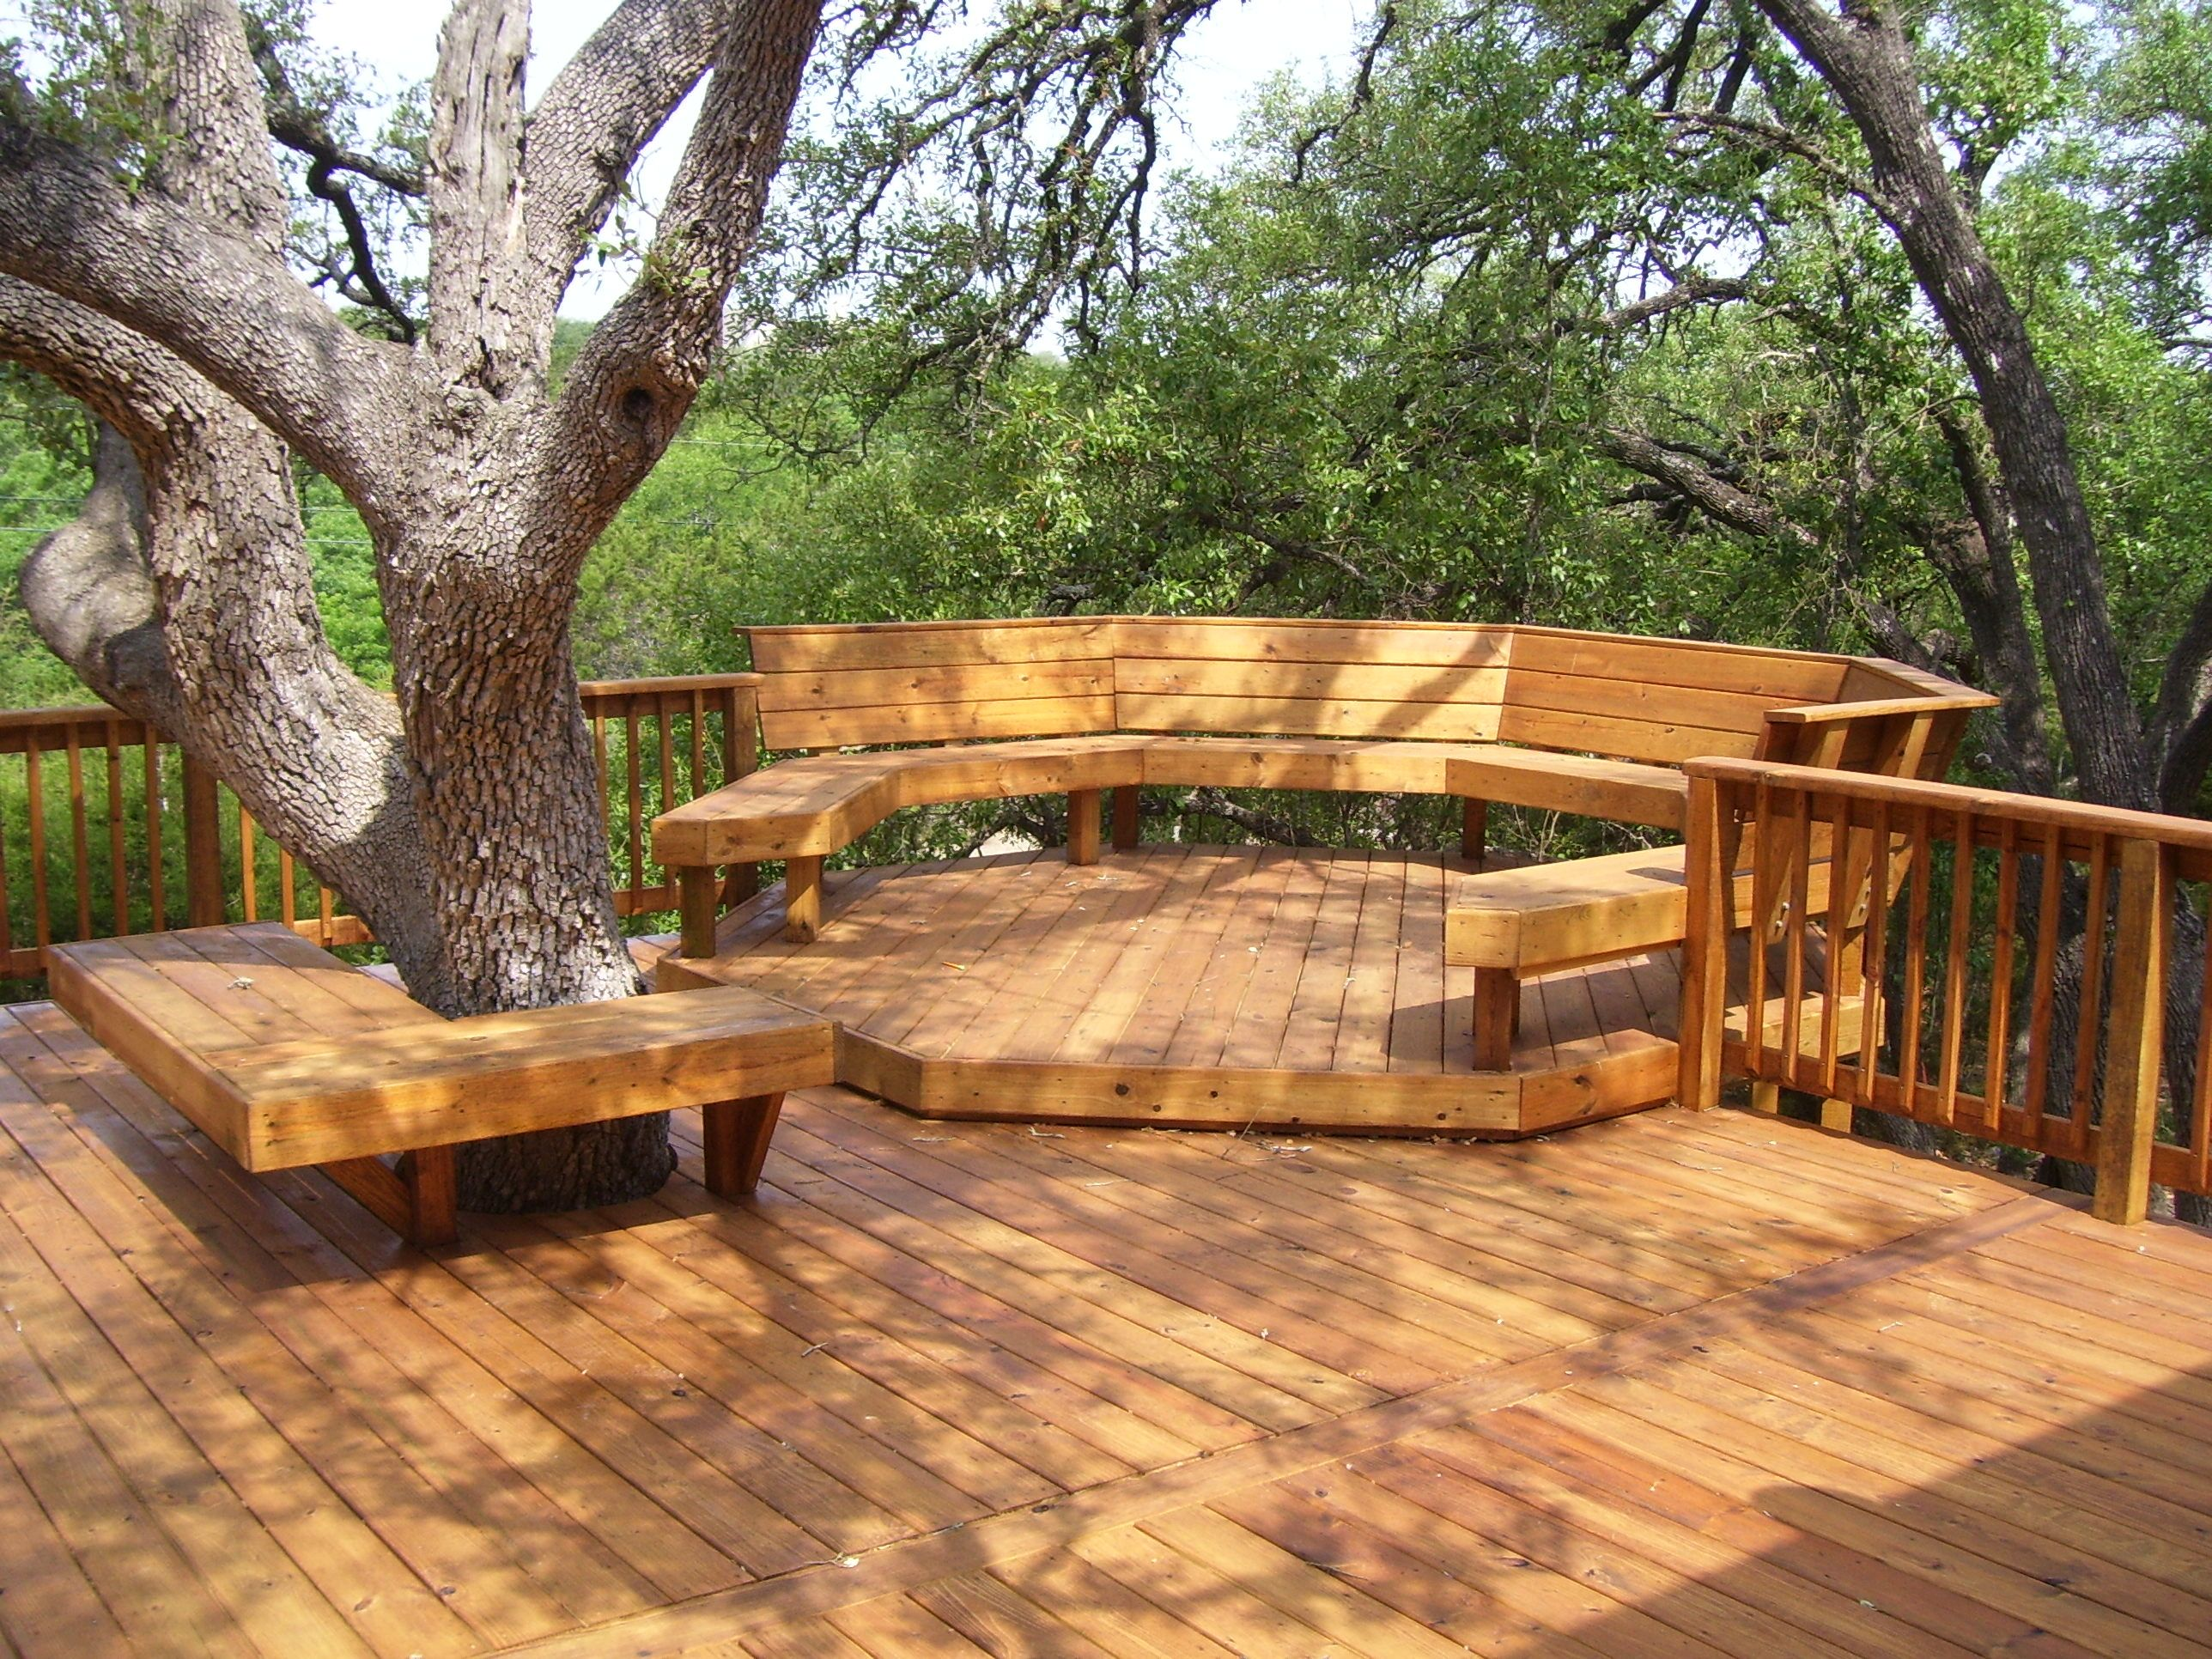 Pin By Isayma Morales On Outdoor Living Deck Designs Backyard Decks Backyard Wood Deck Designs